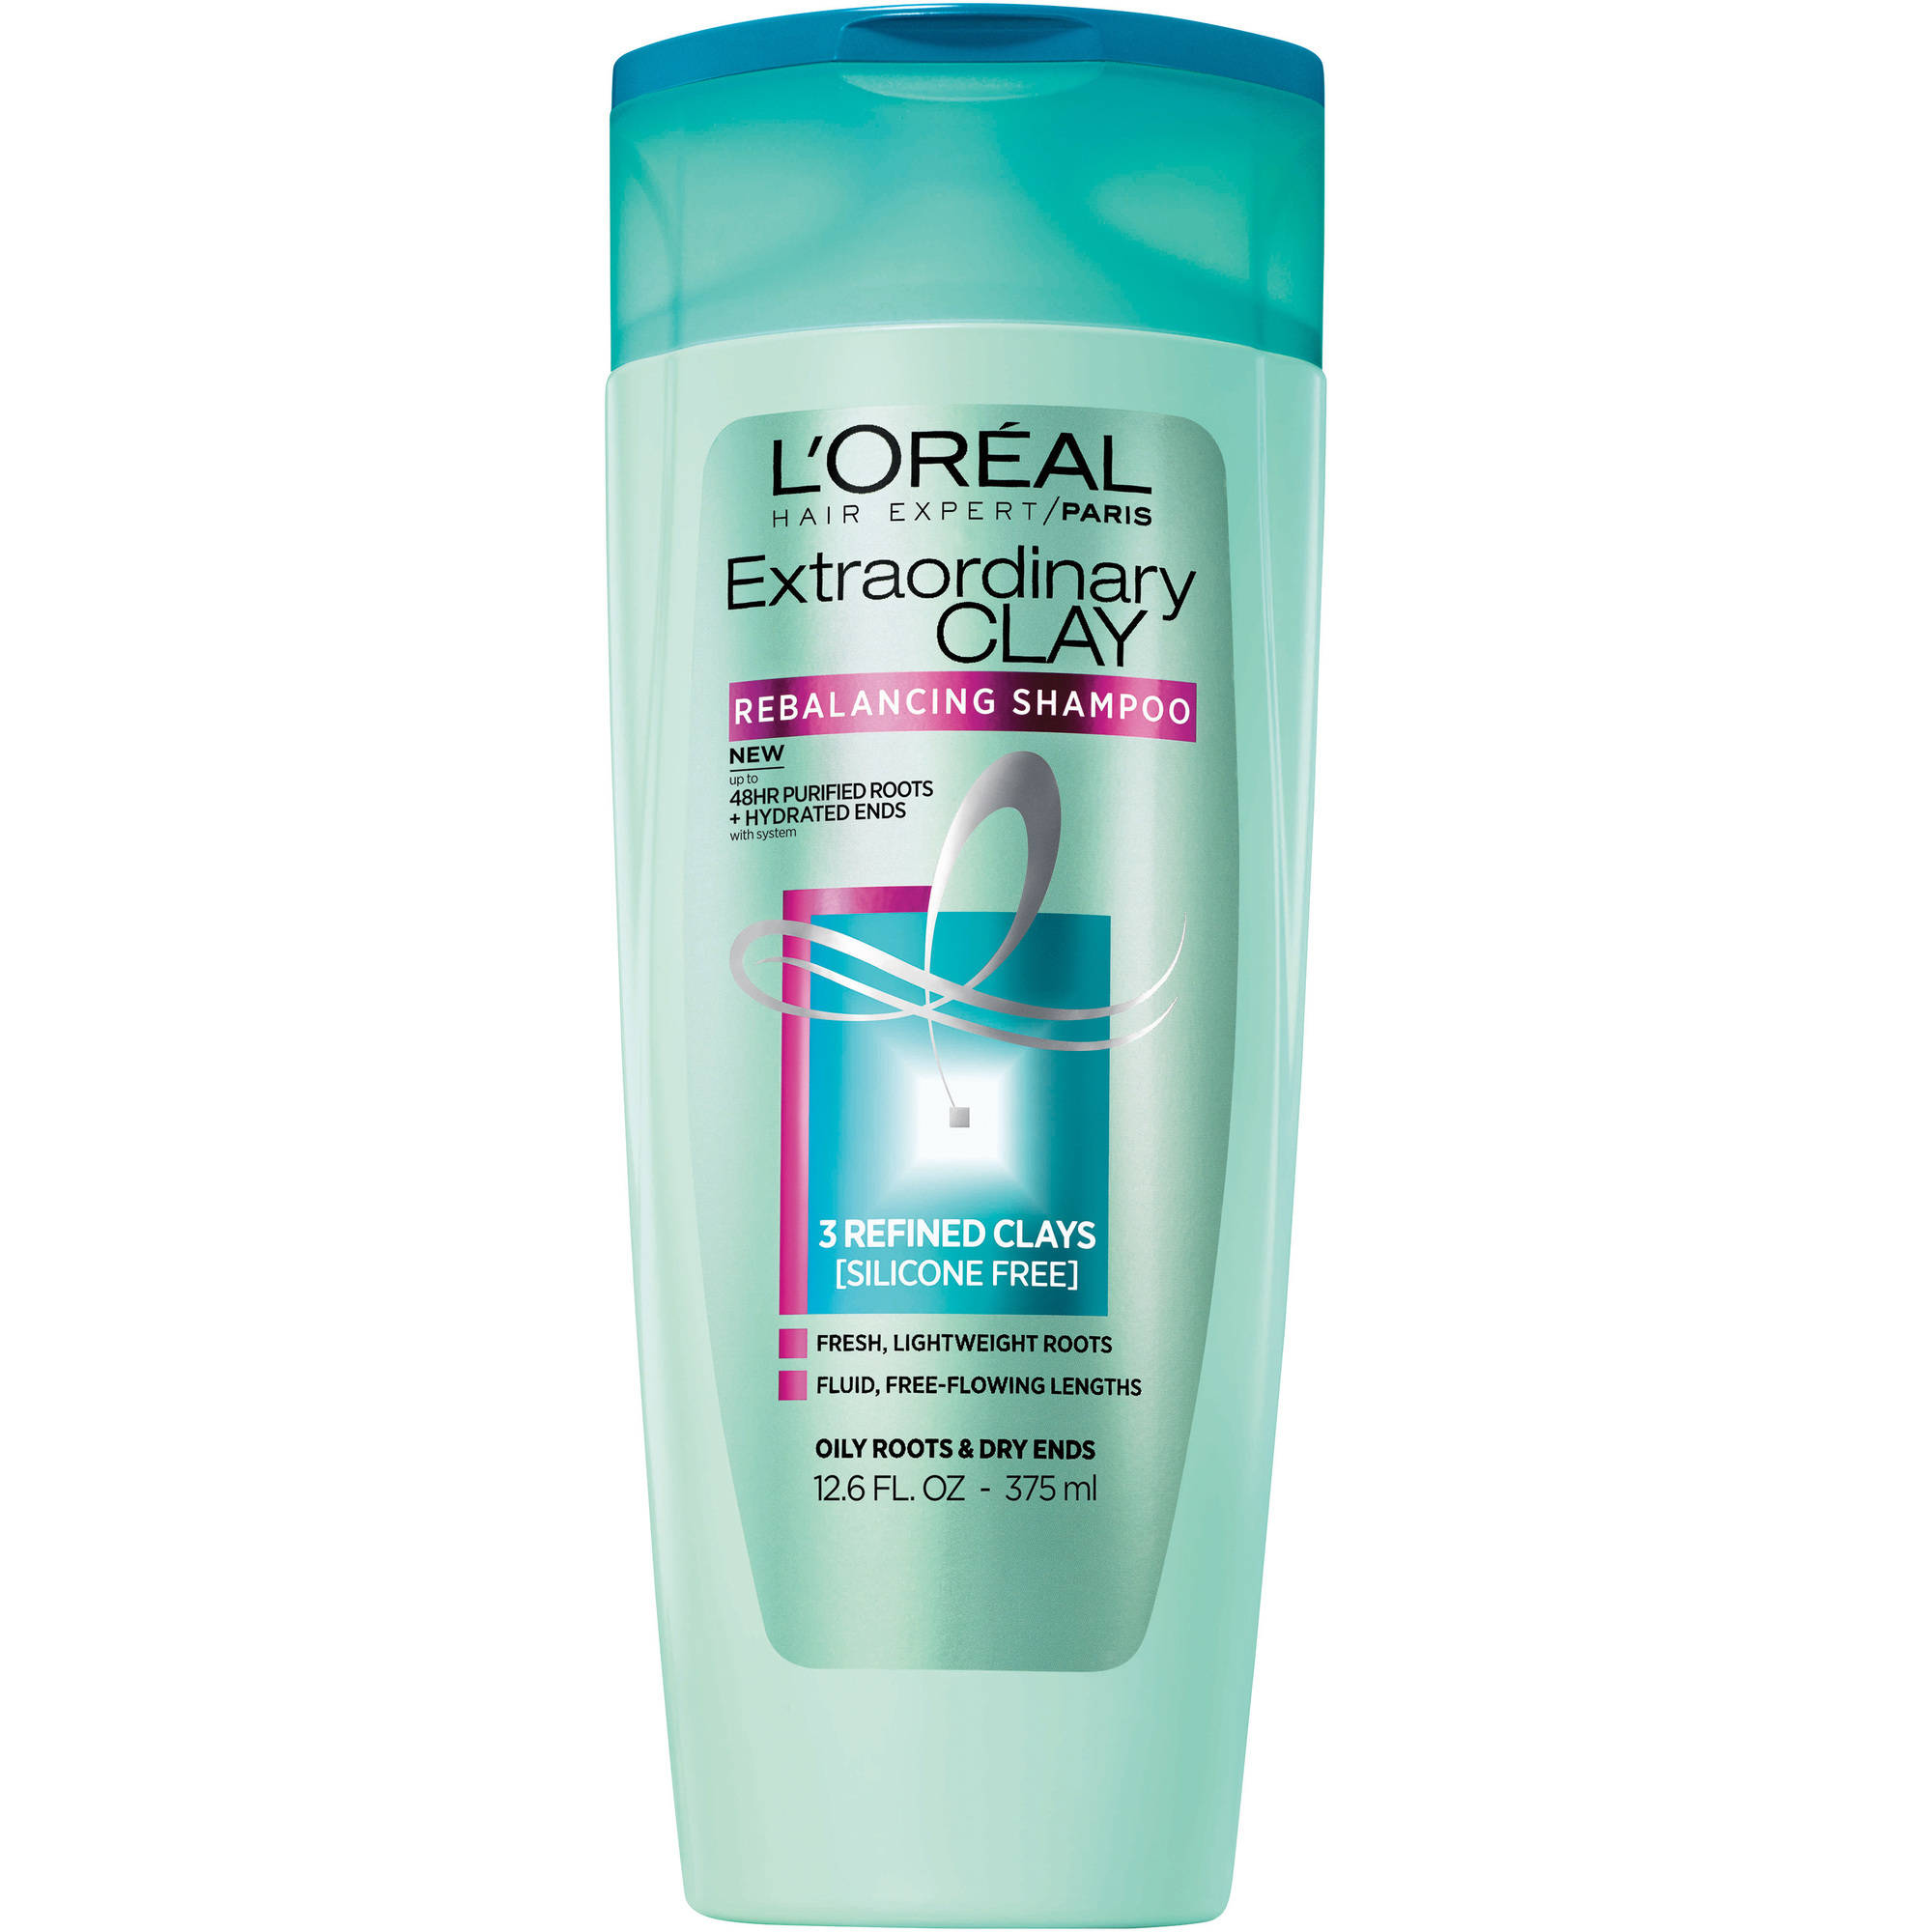 L'Oreal Paris Hair Expert Extraordinary Clay Shampoo, 12.6 fl oz - Walmart.com